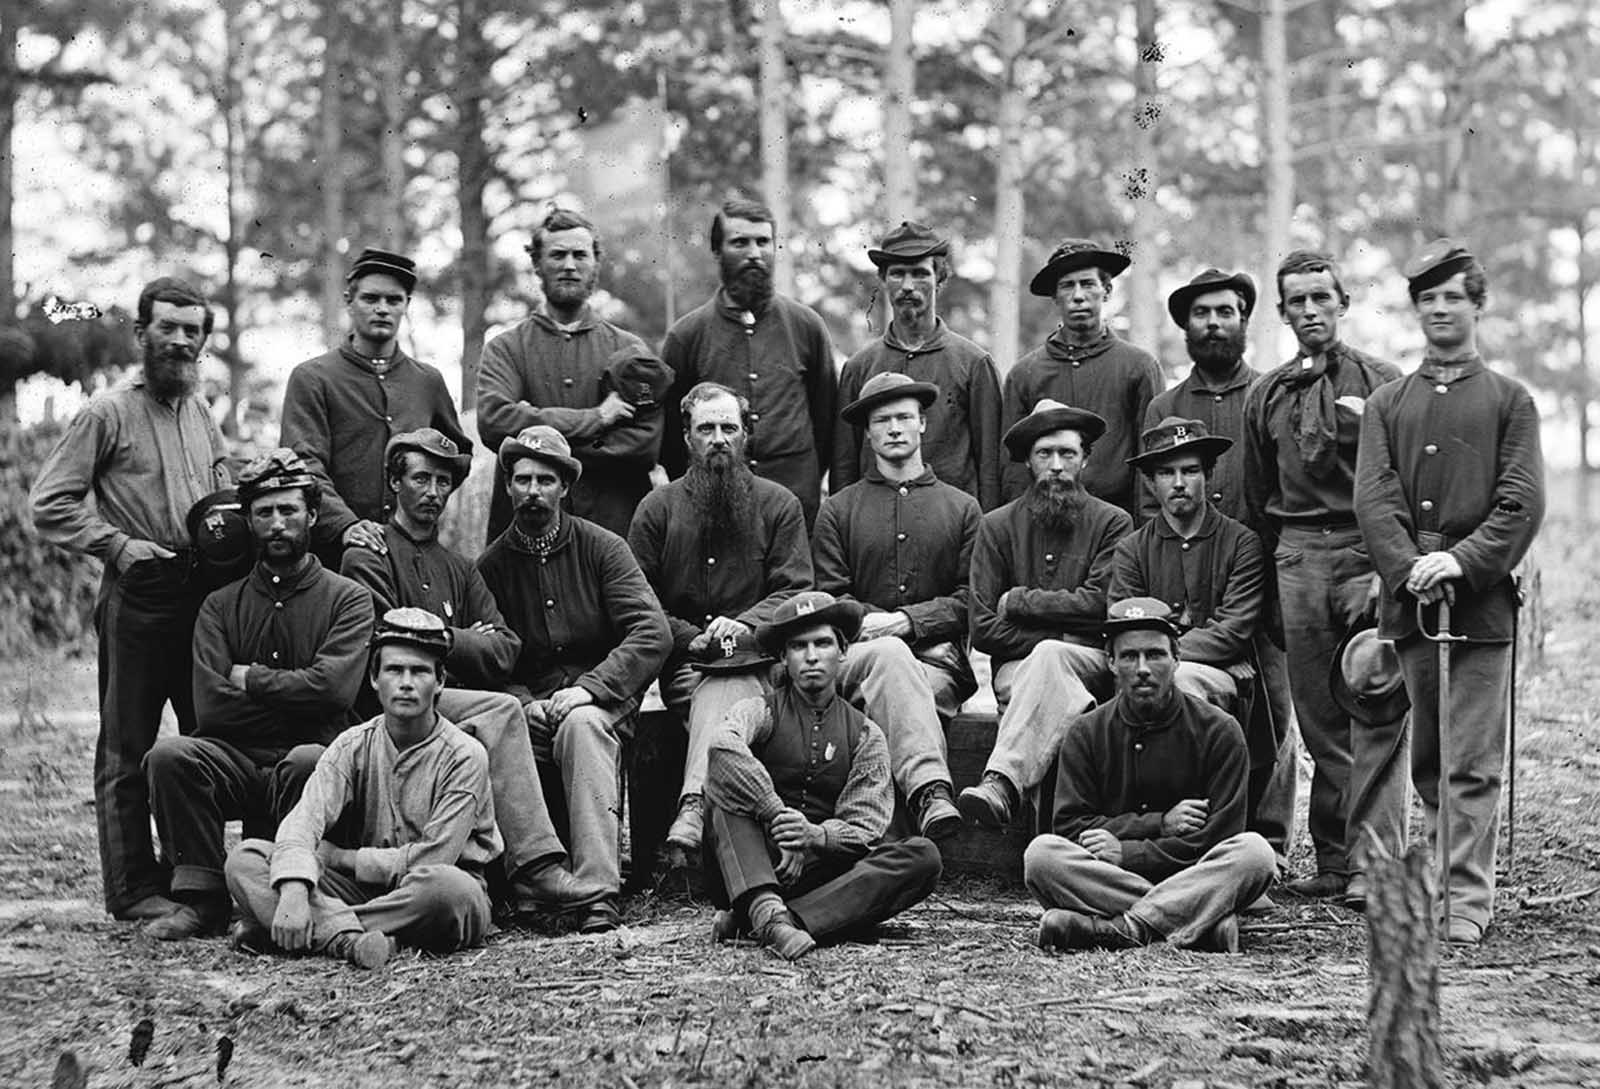 A group men from Company B, U.S. Engineer Battalion, near Petersburg, Virginia in August of 1864.